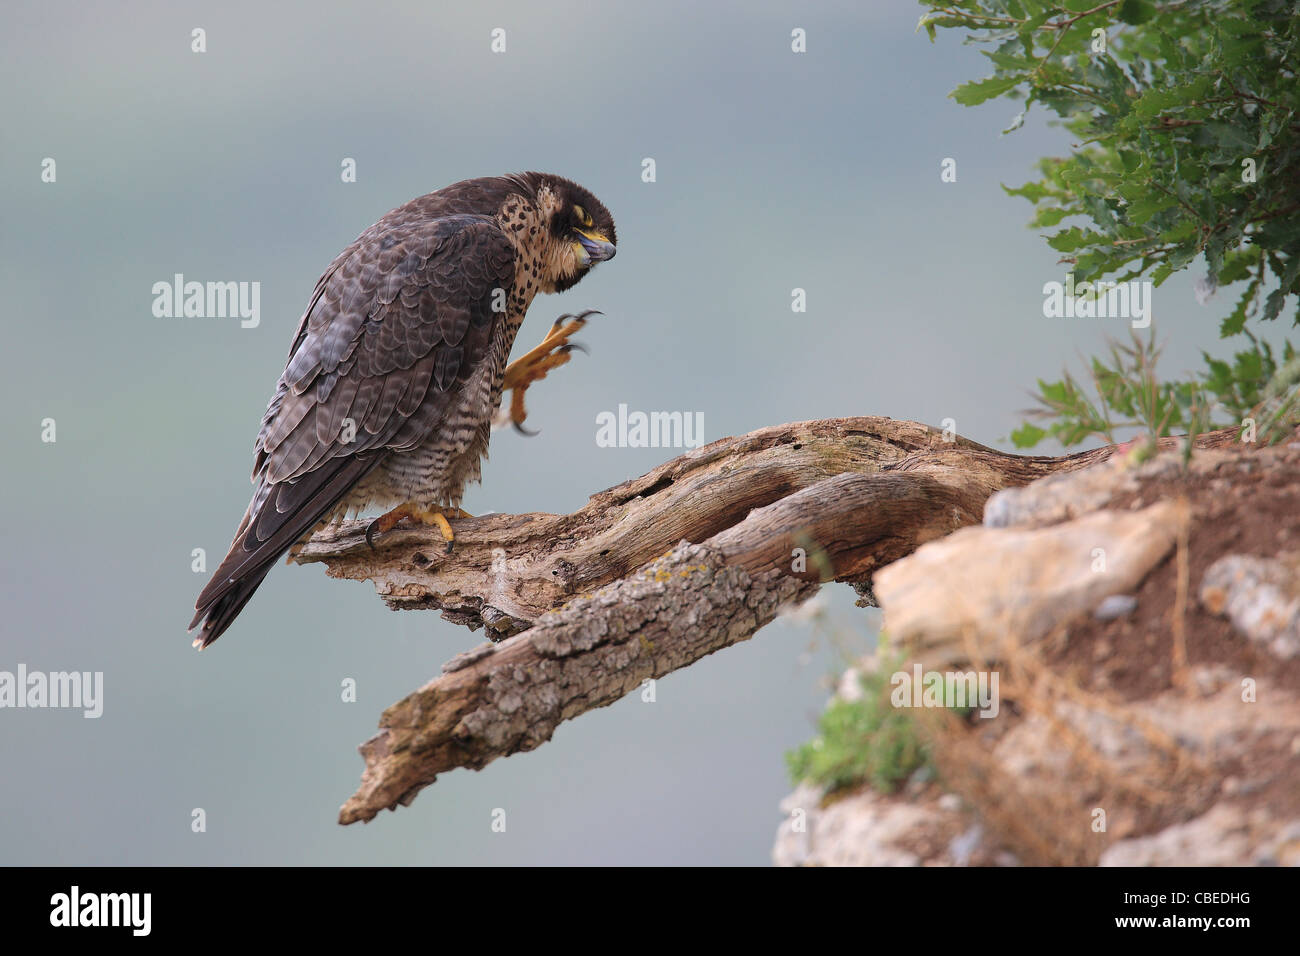 Peregrine Falcon (Falco peregrinus) standing on a broken off branch while scratching. - Stock Image